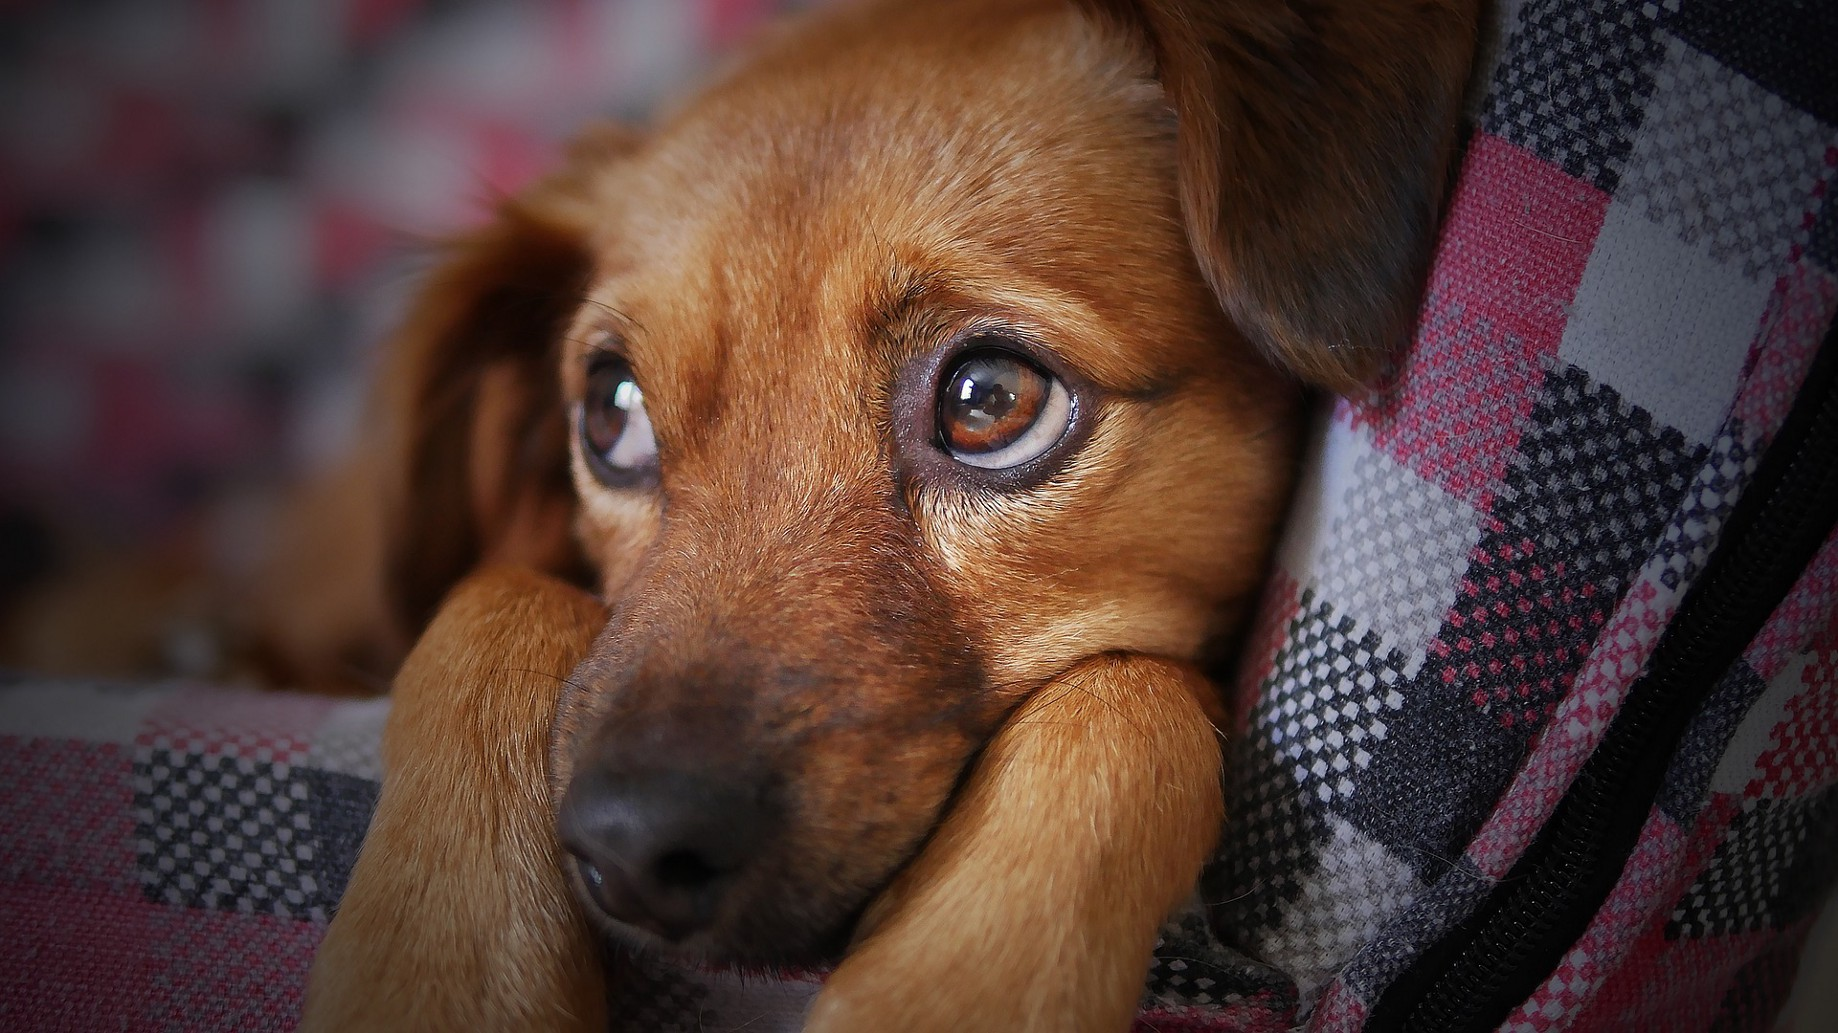 The Puppy Who Loved Cheese - Lauren Havens - Medium